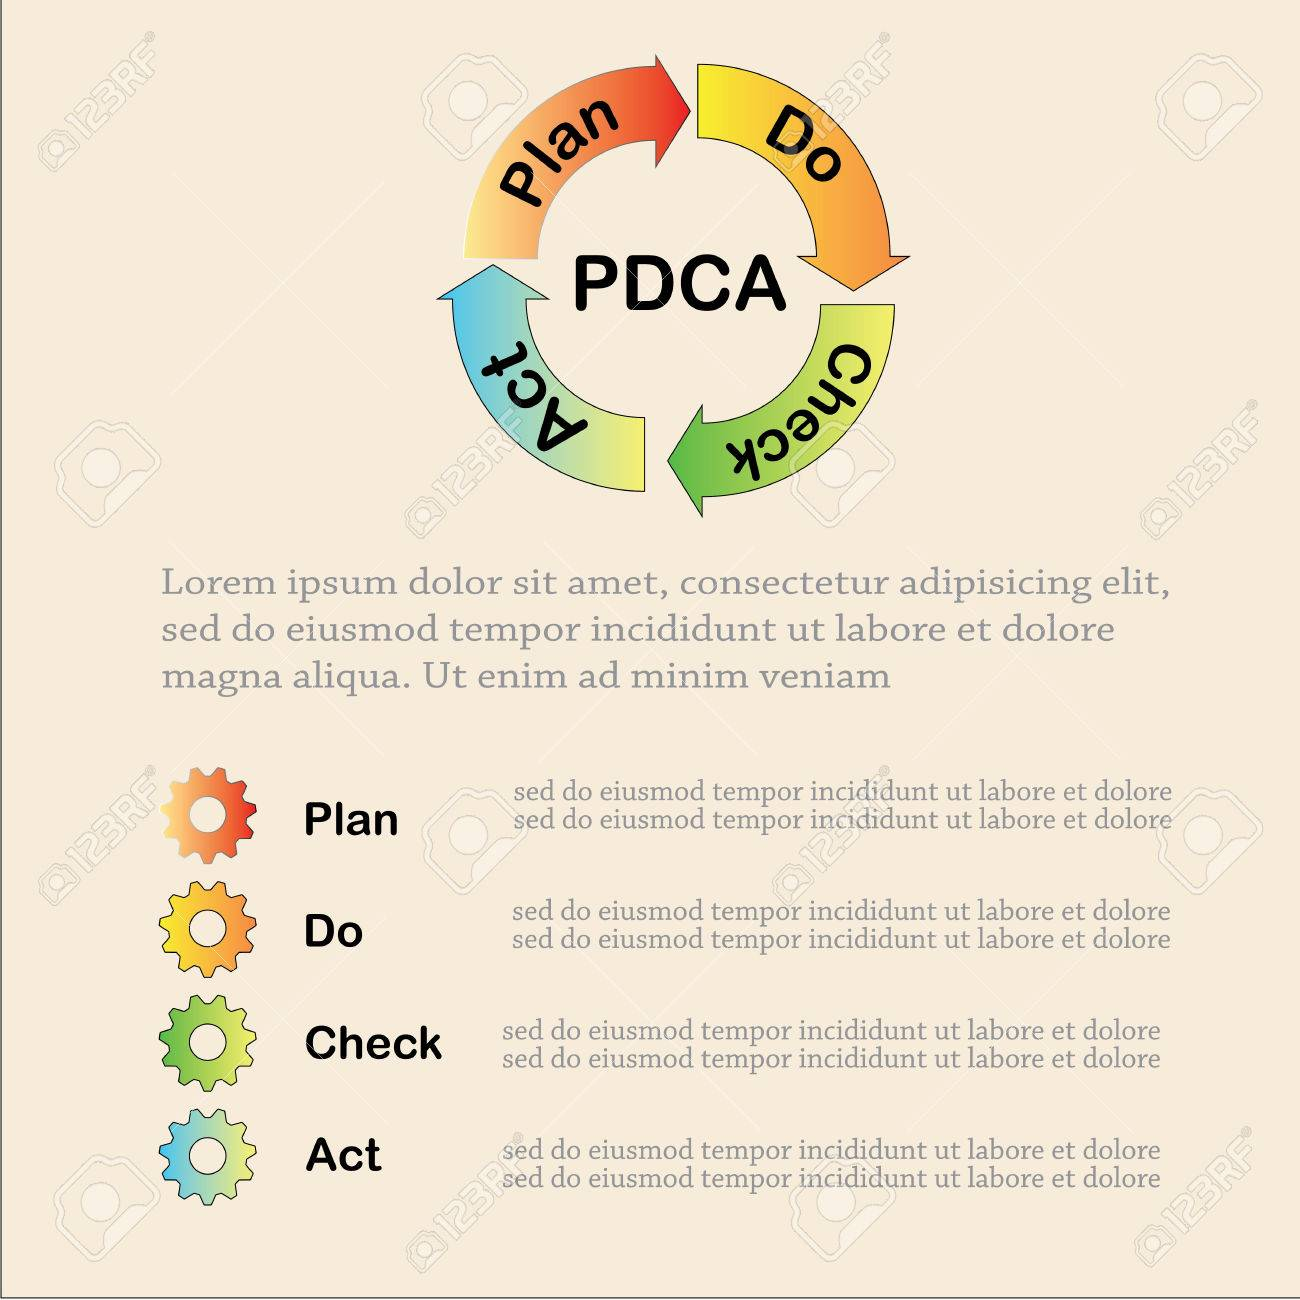 Pdca lean diagram schema step tool business plan concept pdca lean diagram schema step tool business plan concept vector success circle process analysis workflow idea development management ccuart Images